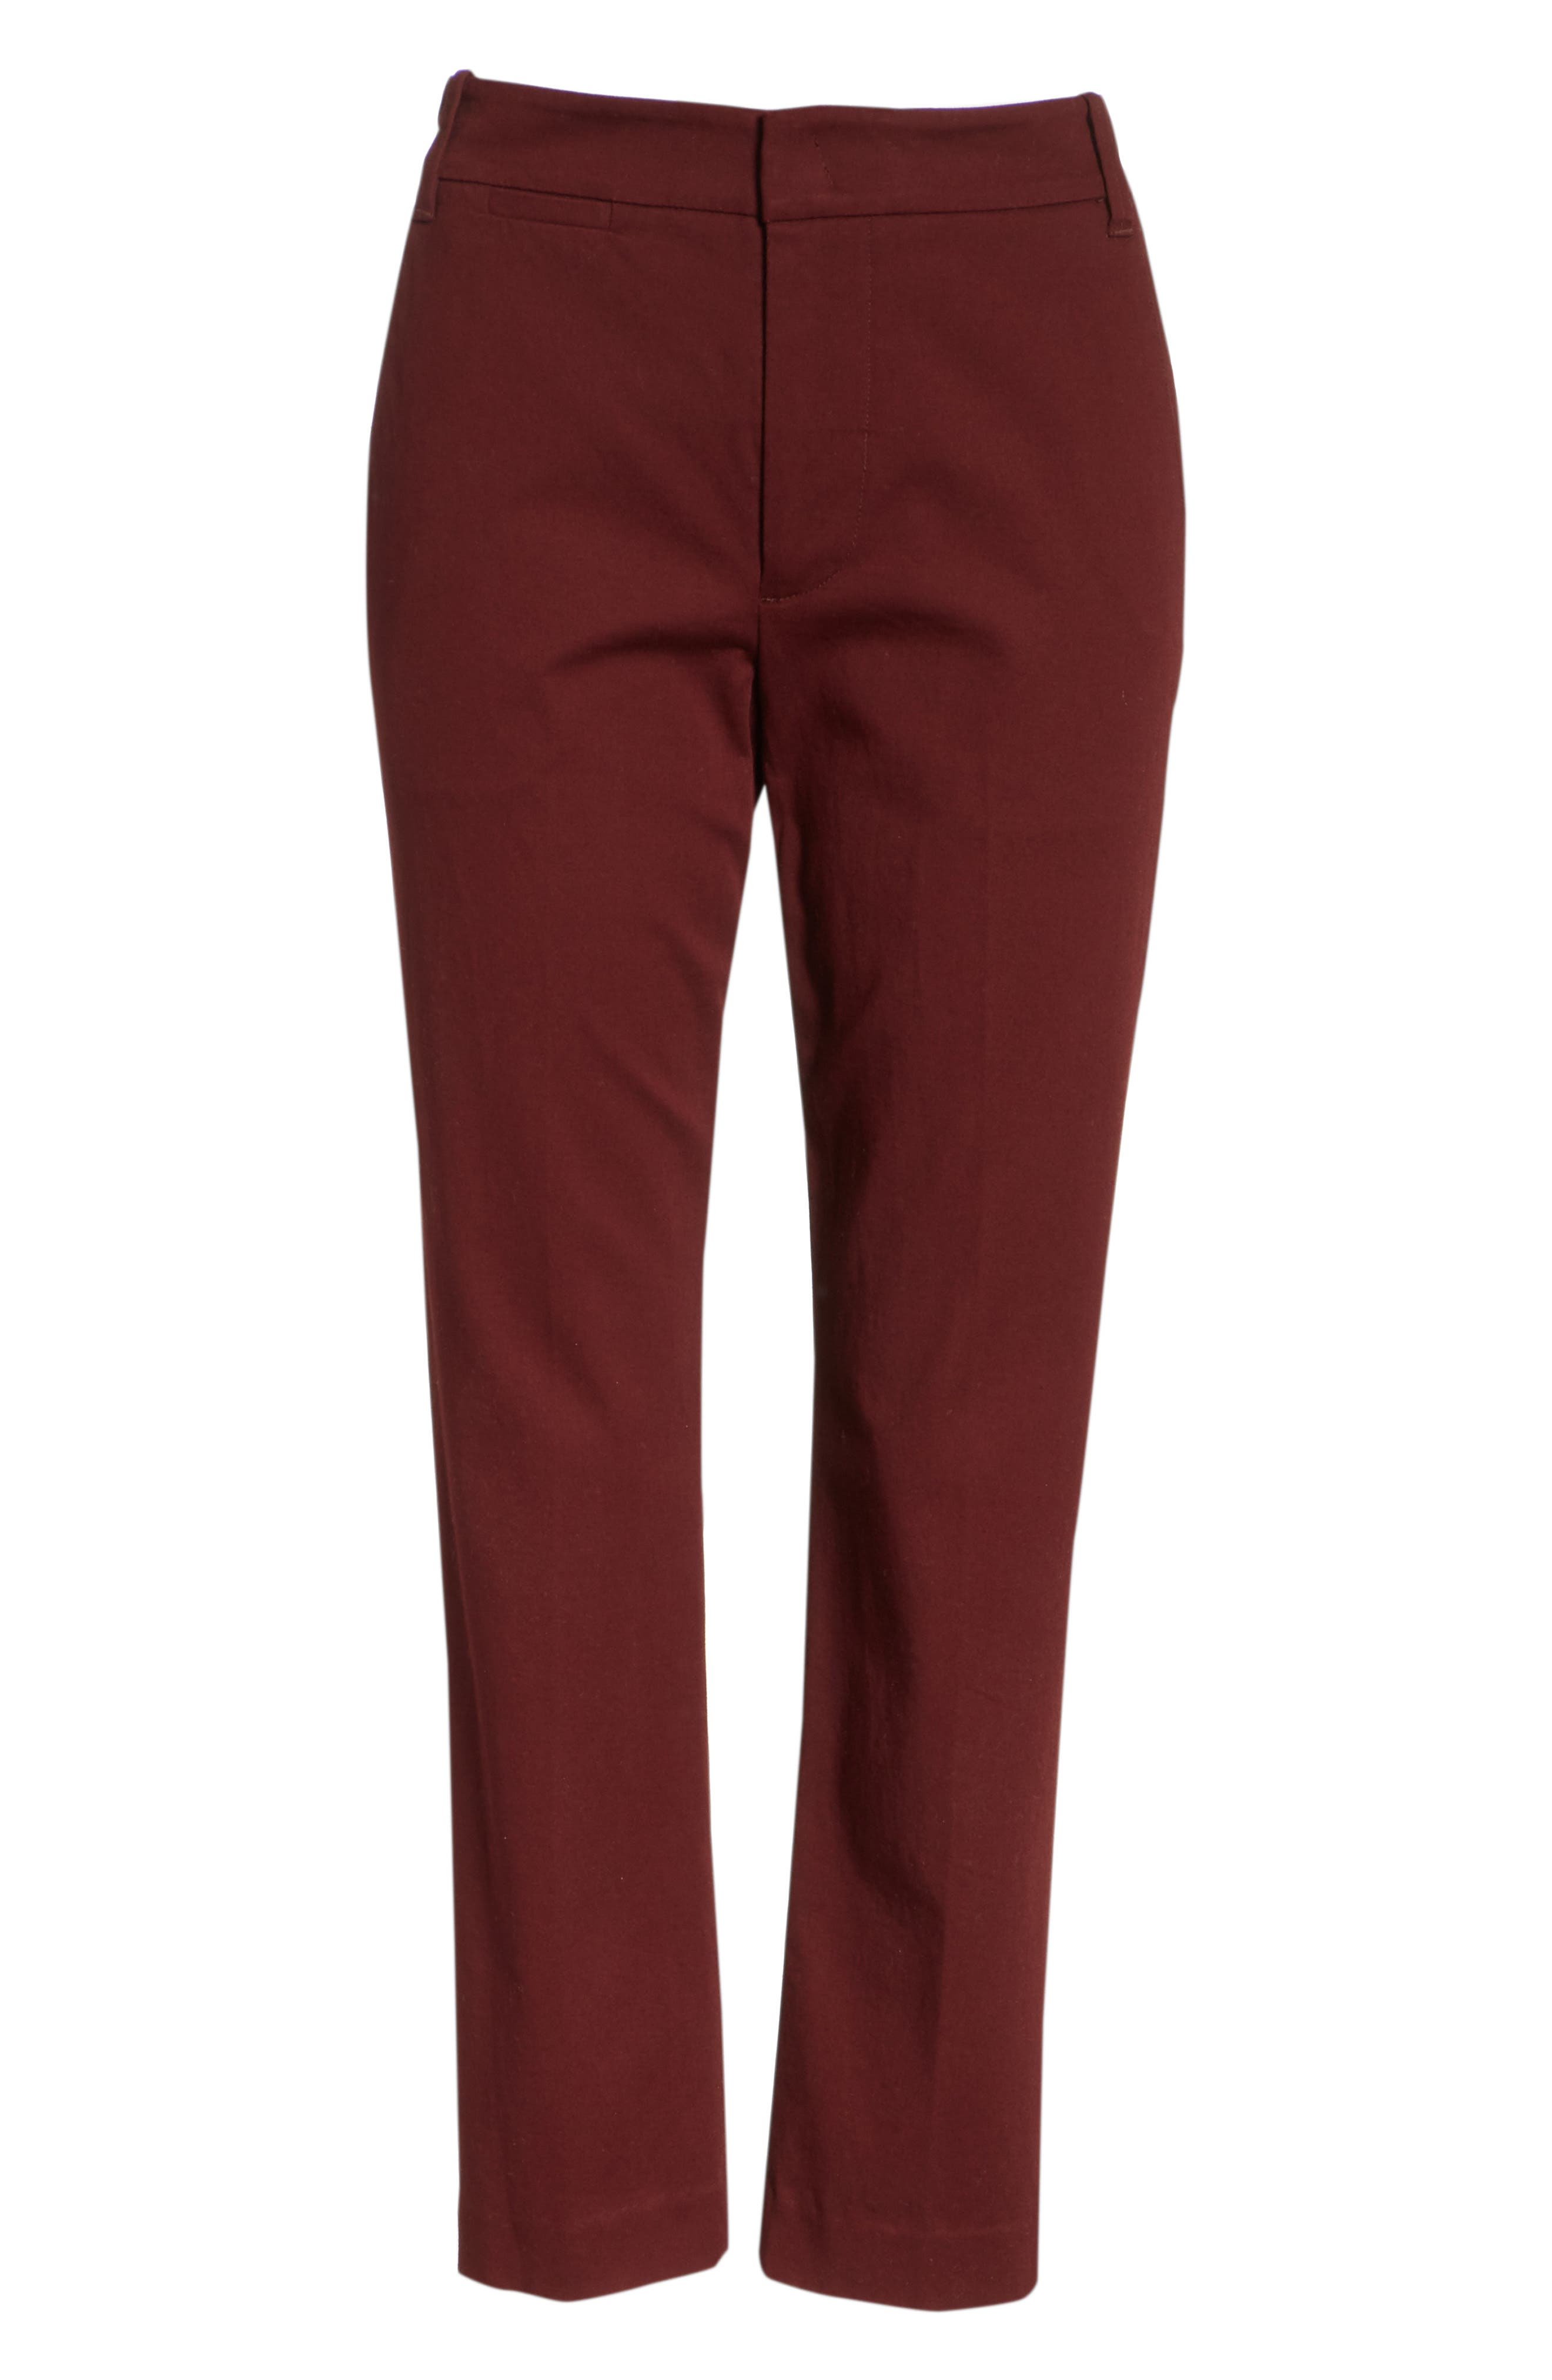 Coin Pocket Chino Pants,                             Alternate thumbnail 6, color,                             Black Cherry